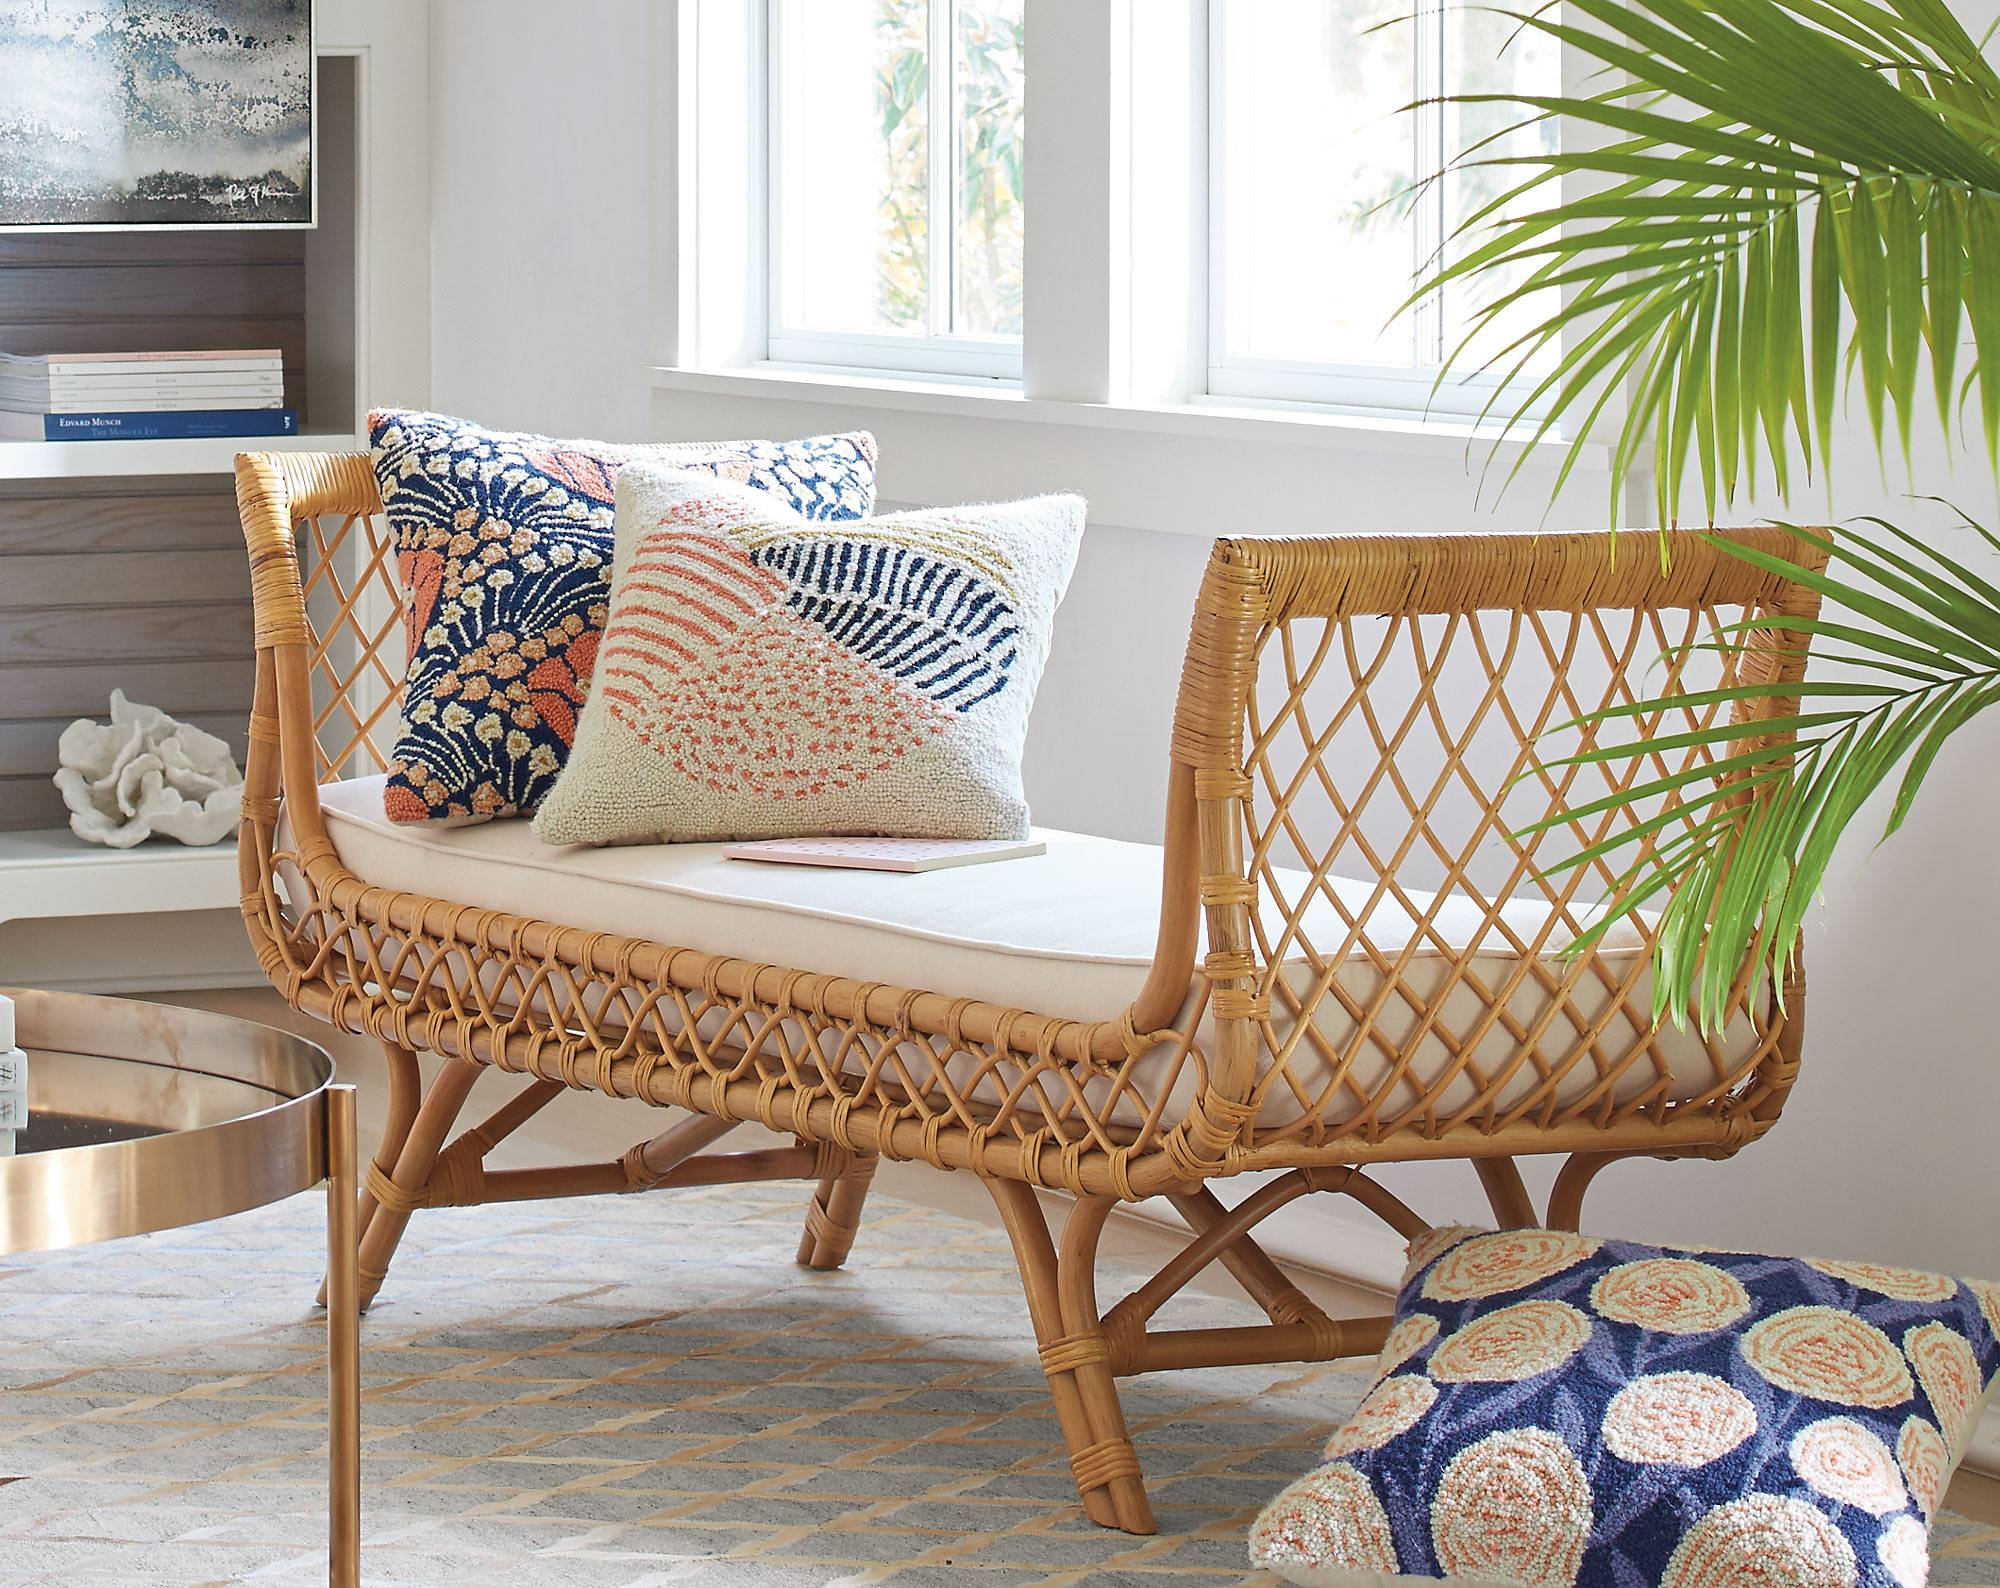 Indoor Rattan Furniture A Natural Art Form Grandin Road Blog